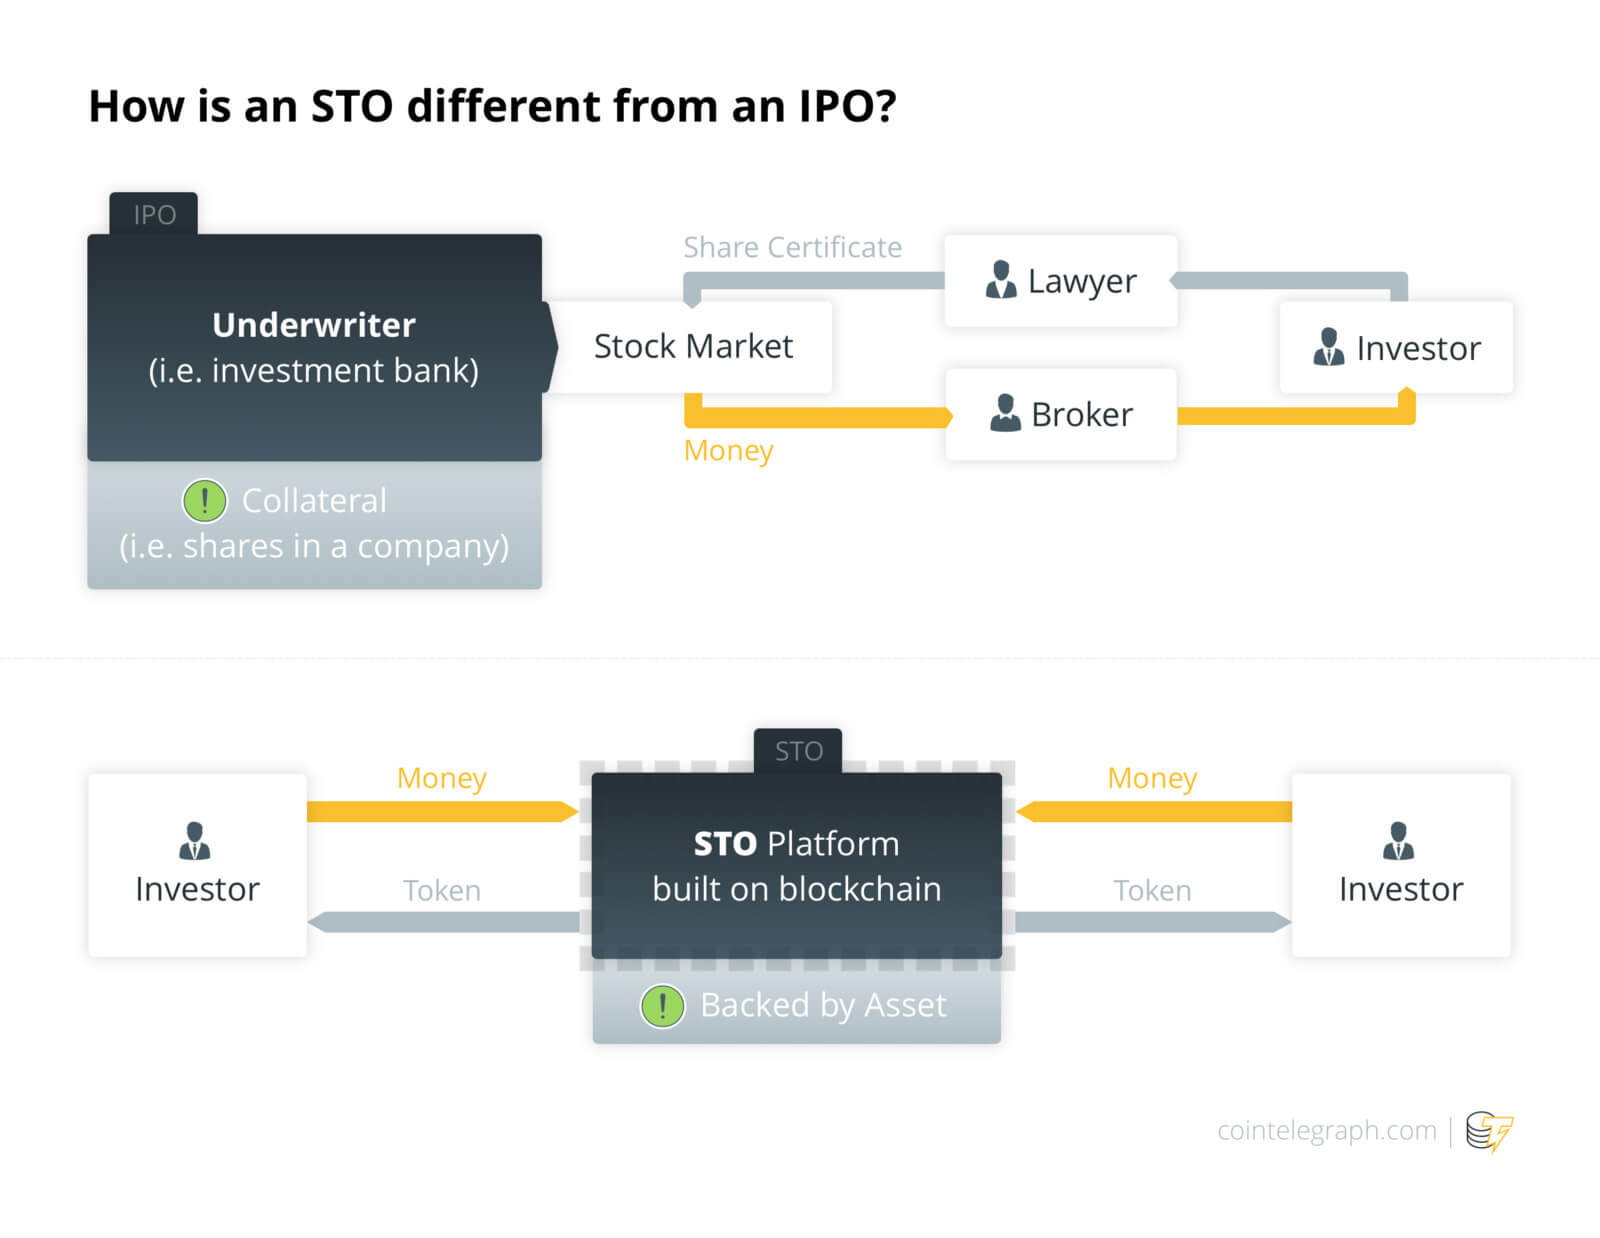 Source — How is an STO different from an IPO?